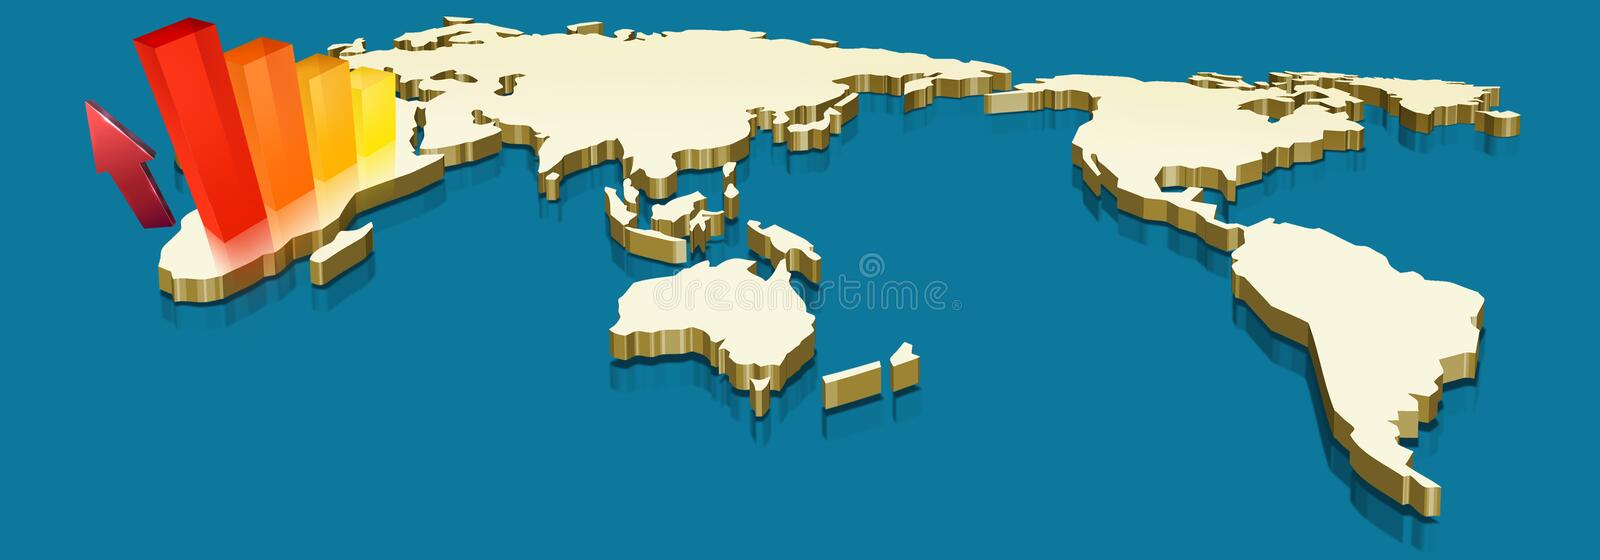 Graphic map royalty free stock photography